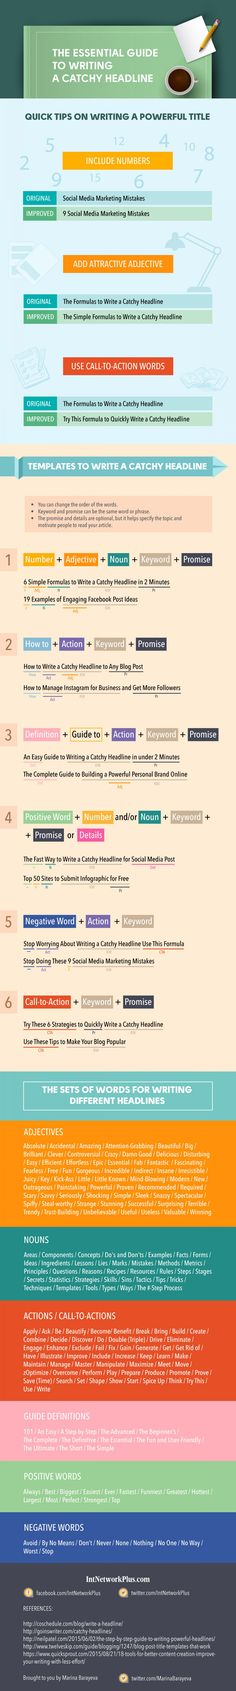 The Essential Guide to Writing an Attractive Headline in 2 Minutes Infographic